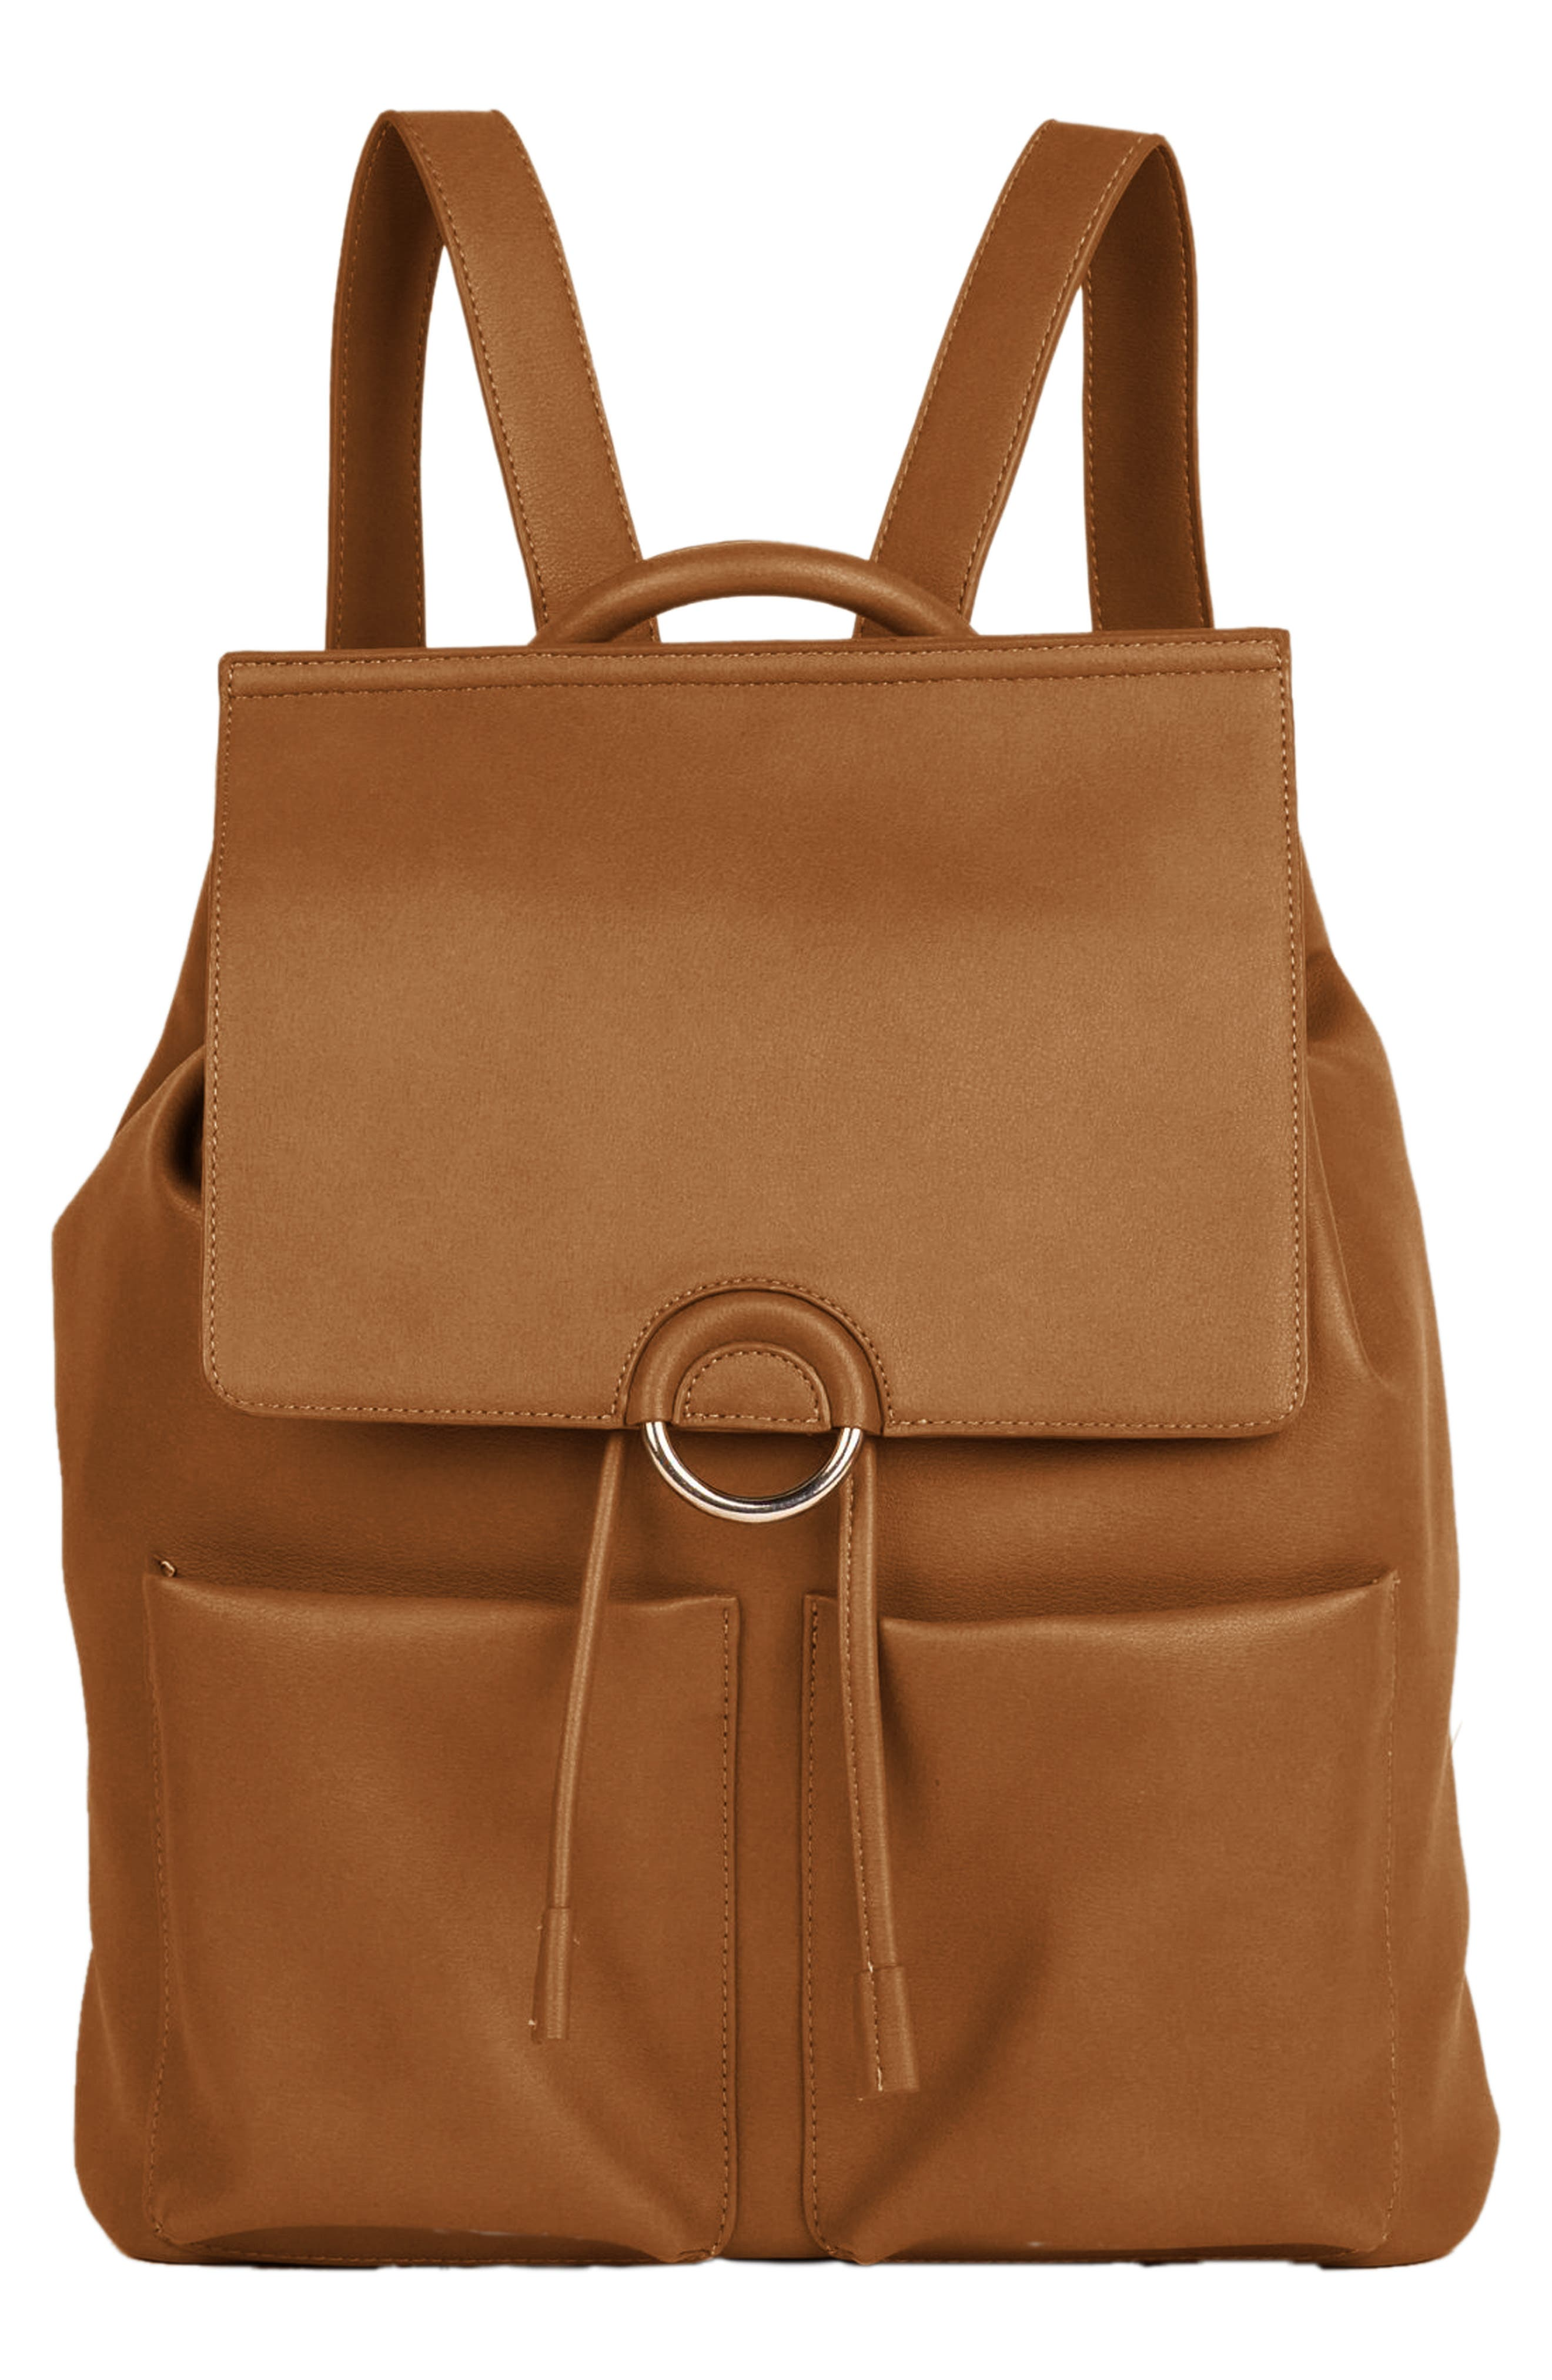 URBAN ORIGINALS THE THRILL VEGAN LEATHER BACKPACK - BROWN